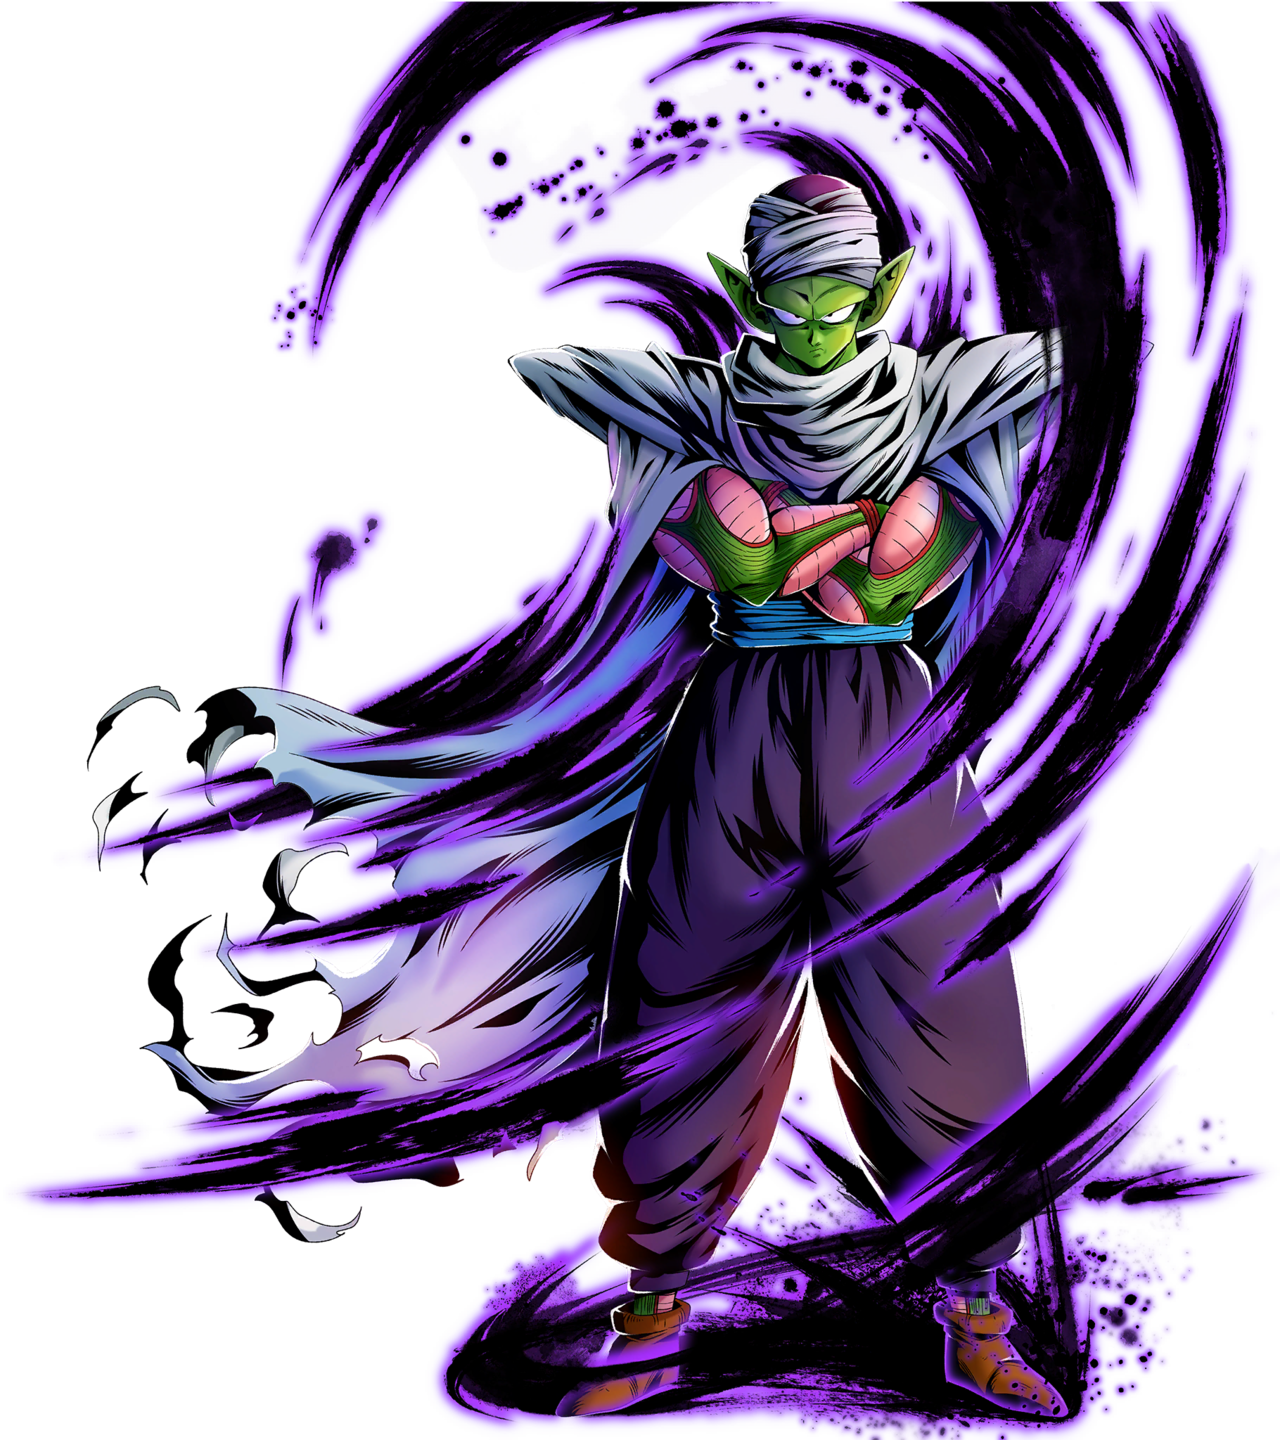 Dragonball Legends Piccolo With Images Dragon Ball Super Manga